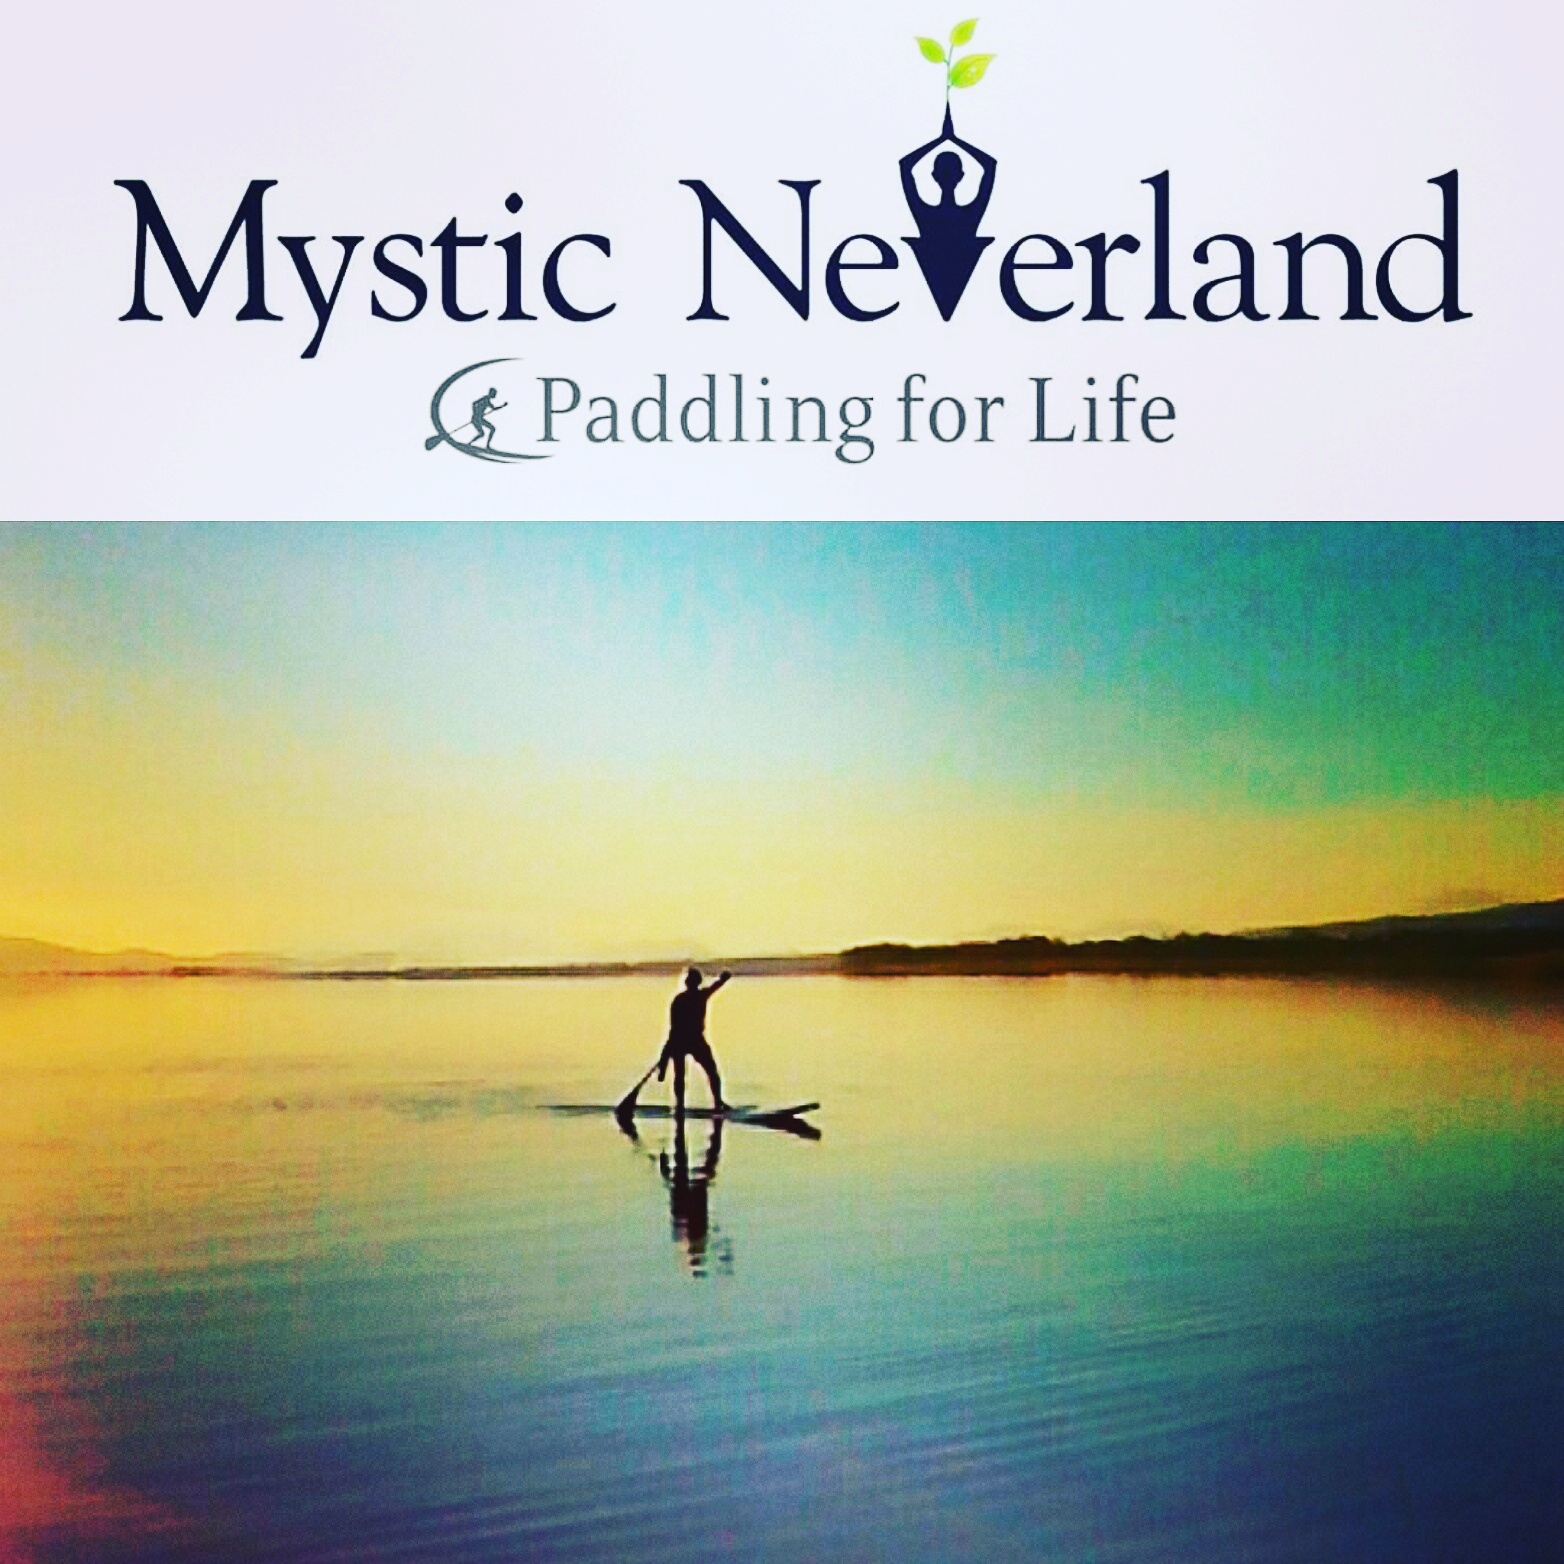 Mystic Neverland Sup Yoga & More...